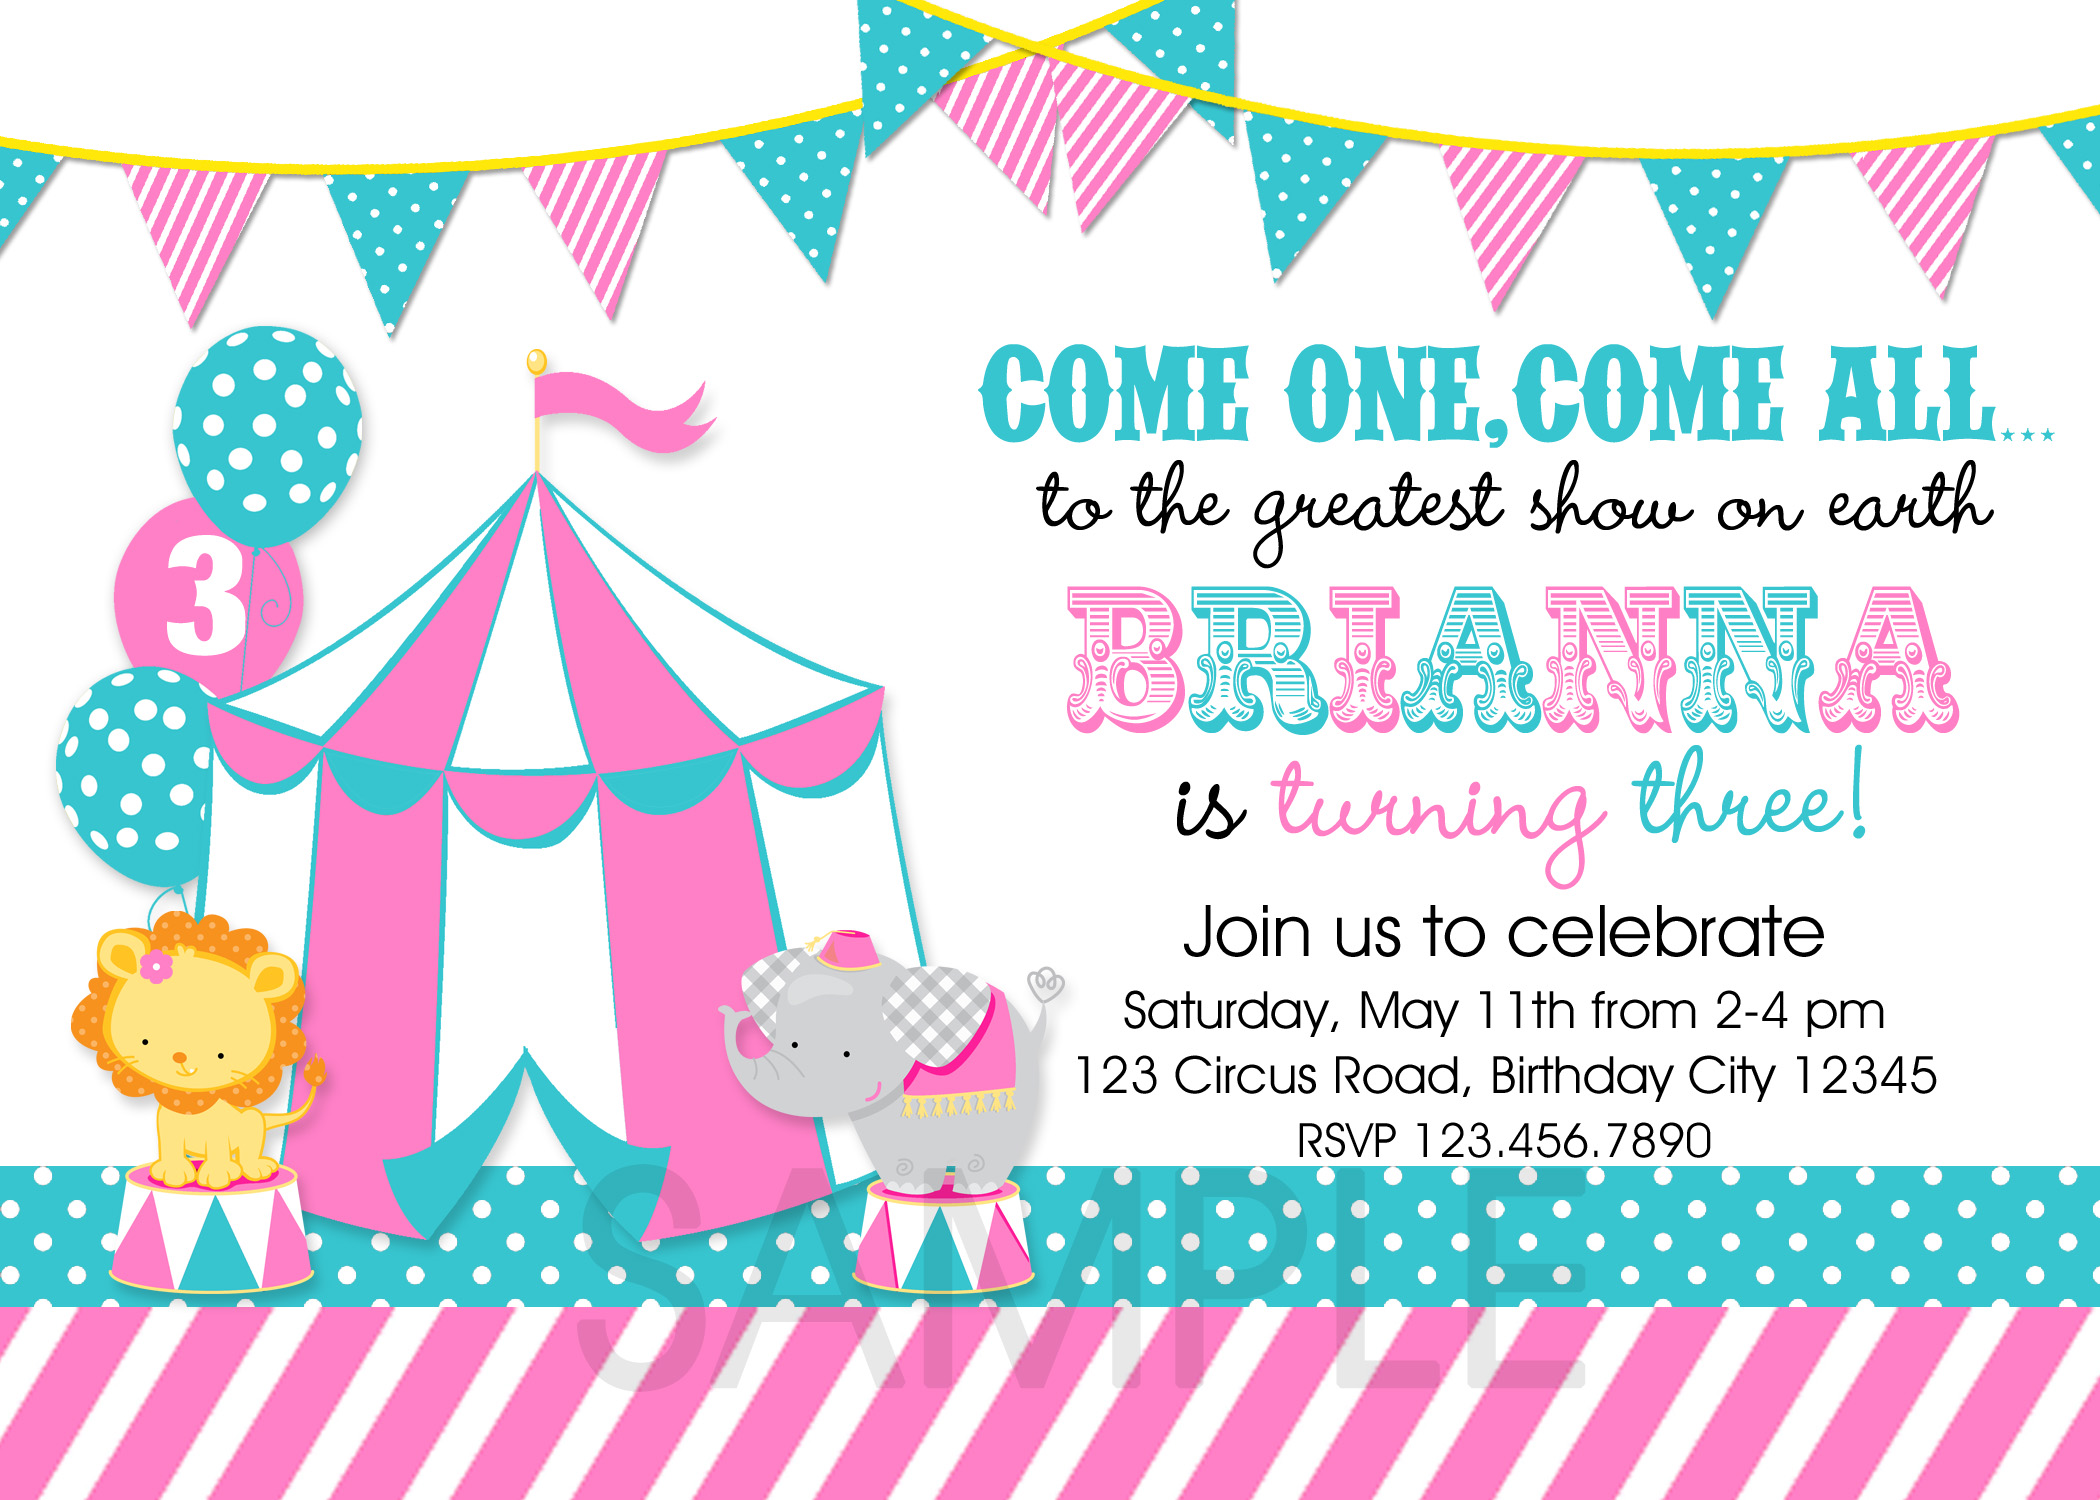 Printable Birthday Party Invitations Circus Carnival Theme